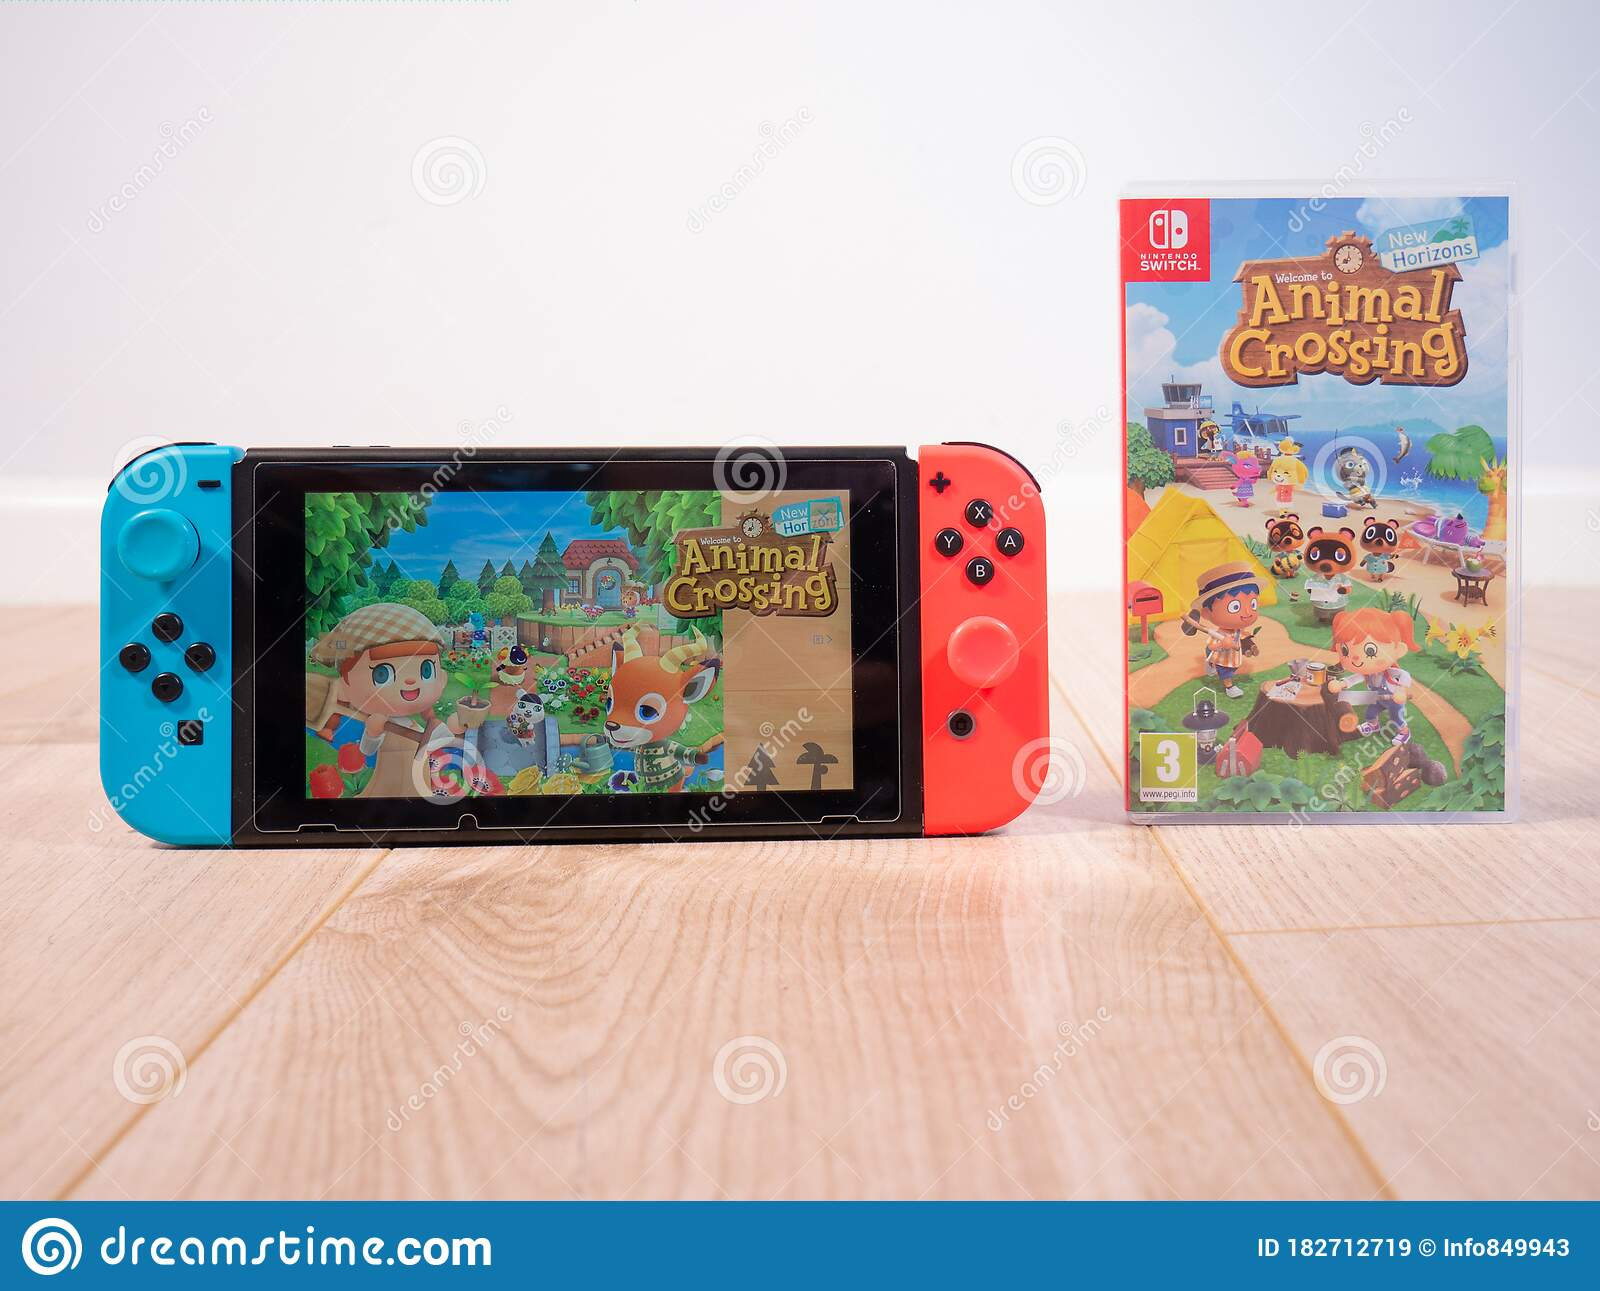 May 2020 Uk Nintendo Switch Console And Animal Crossing New